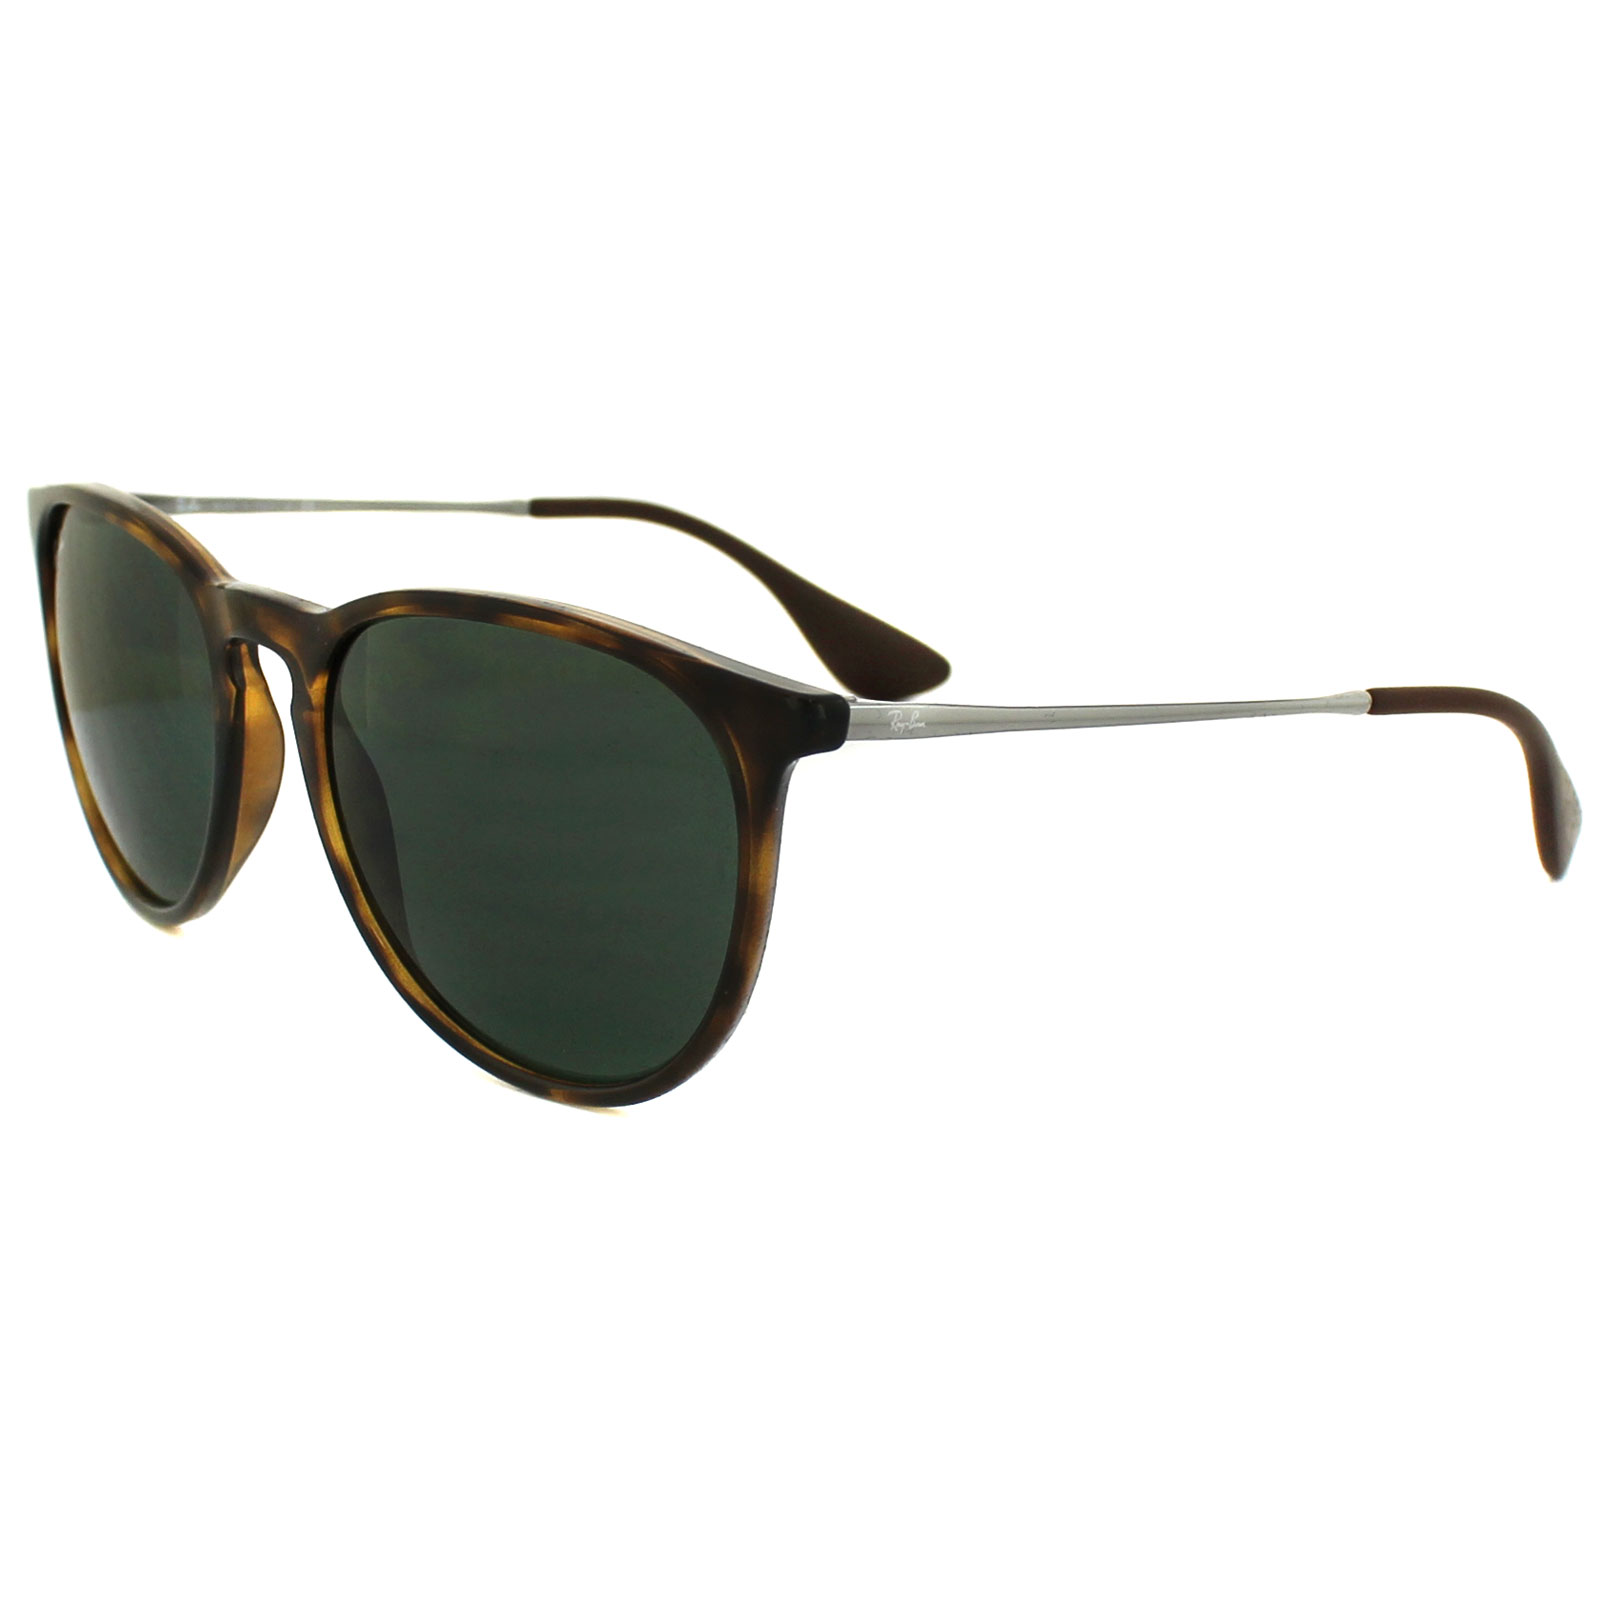 official ray ban outlet uk  ray ban erika 4171 sunglasses